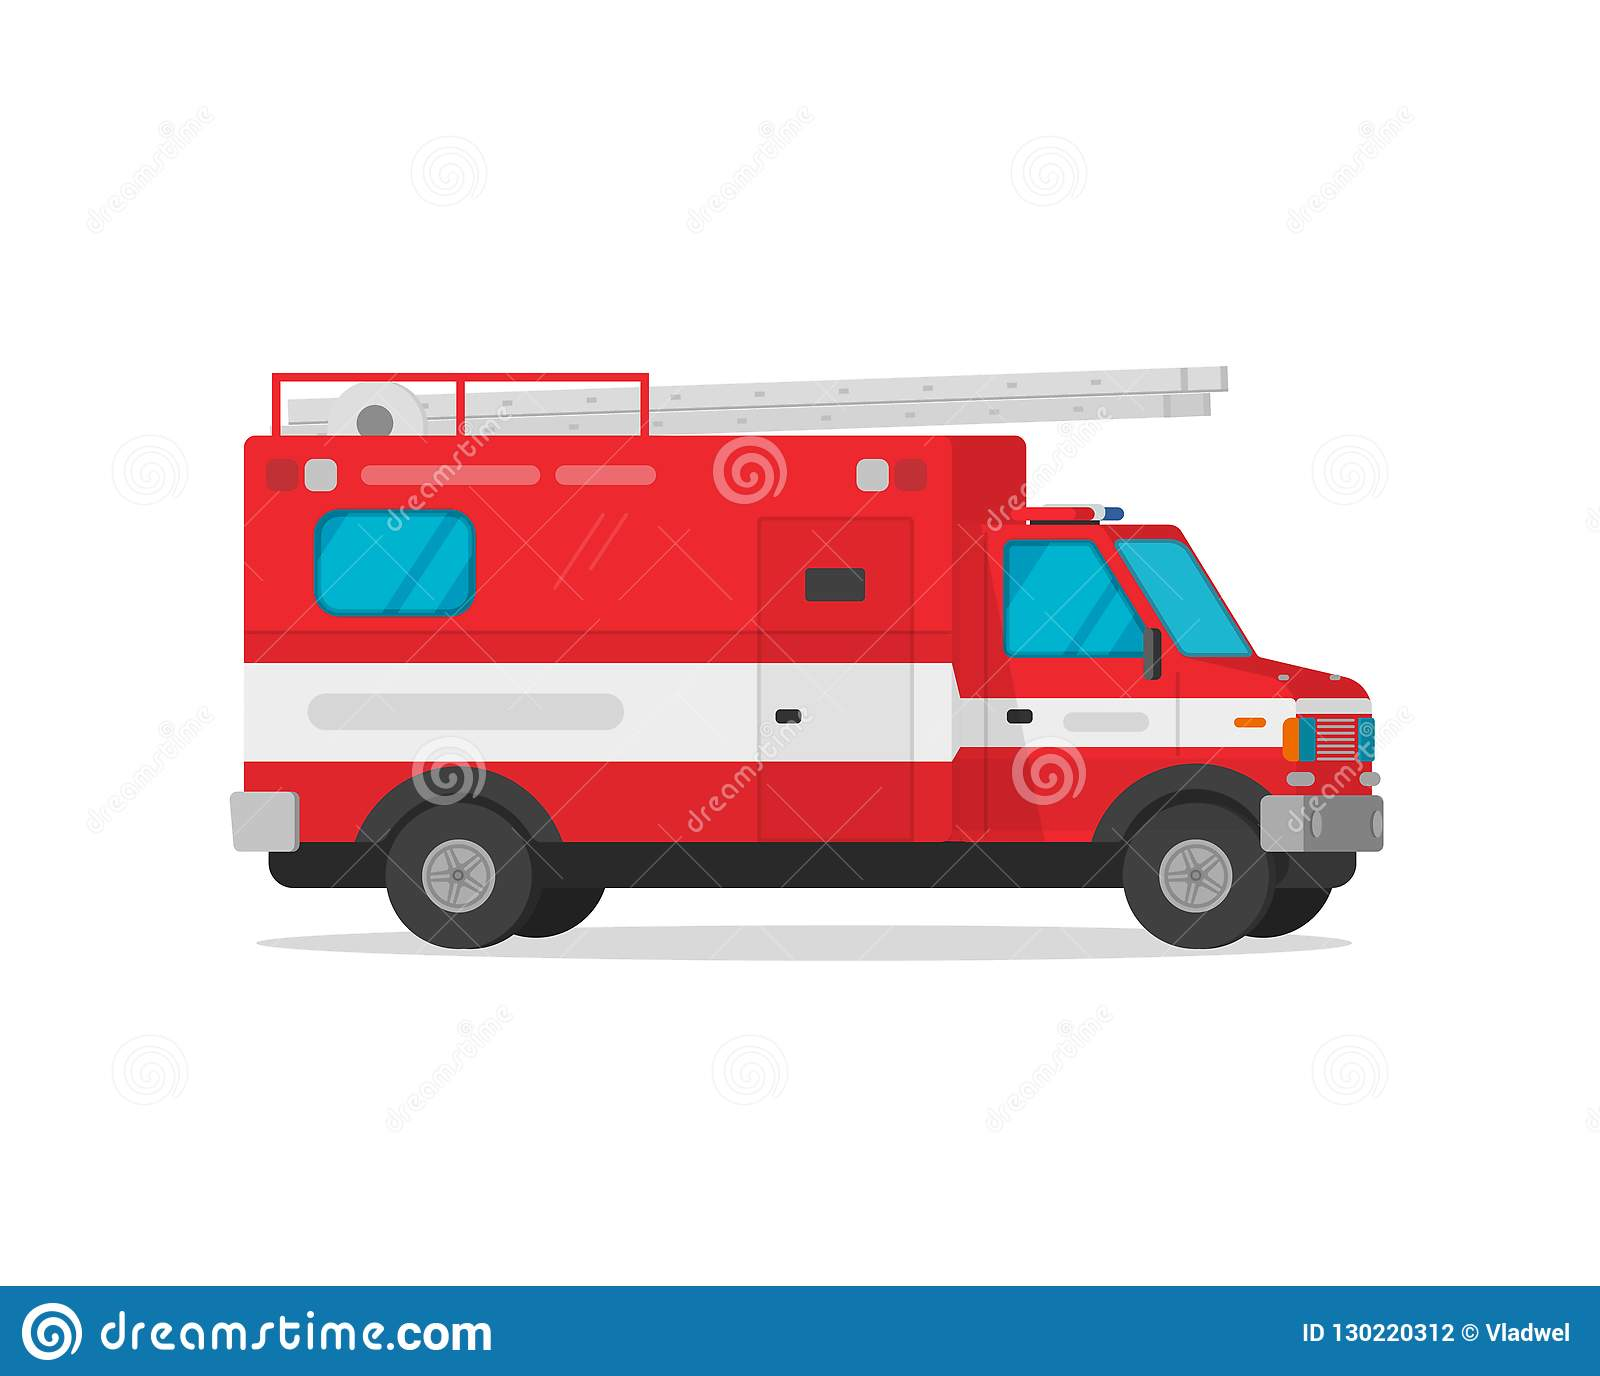 hight resolution of fire truck vector illustration flat cartoon firetruck emergency vehicle isolated on white background